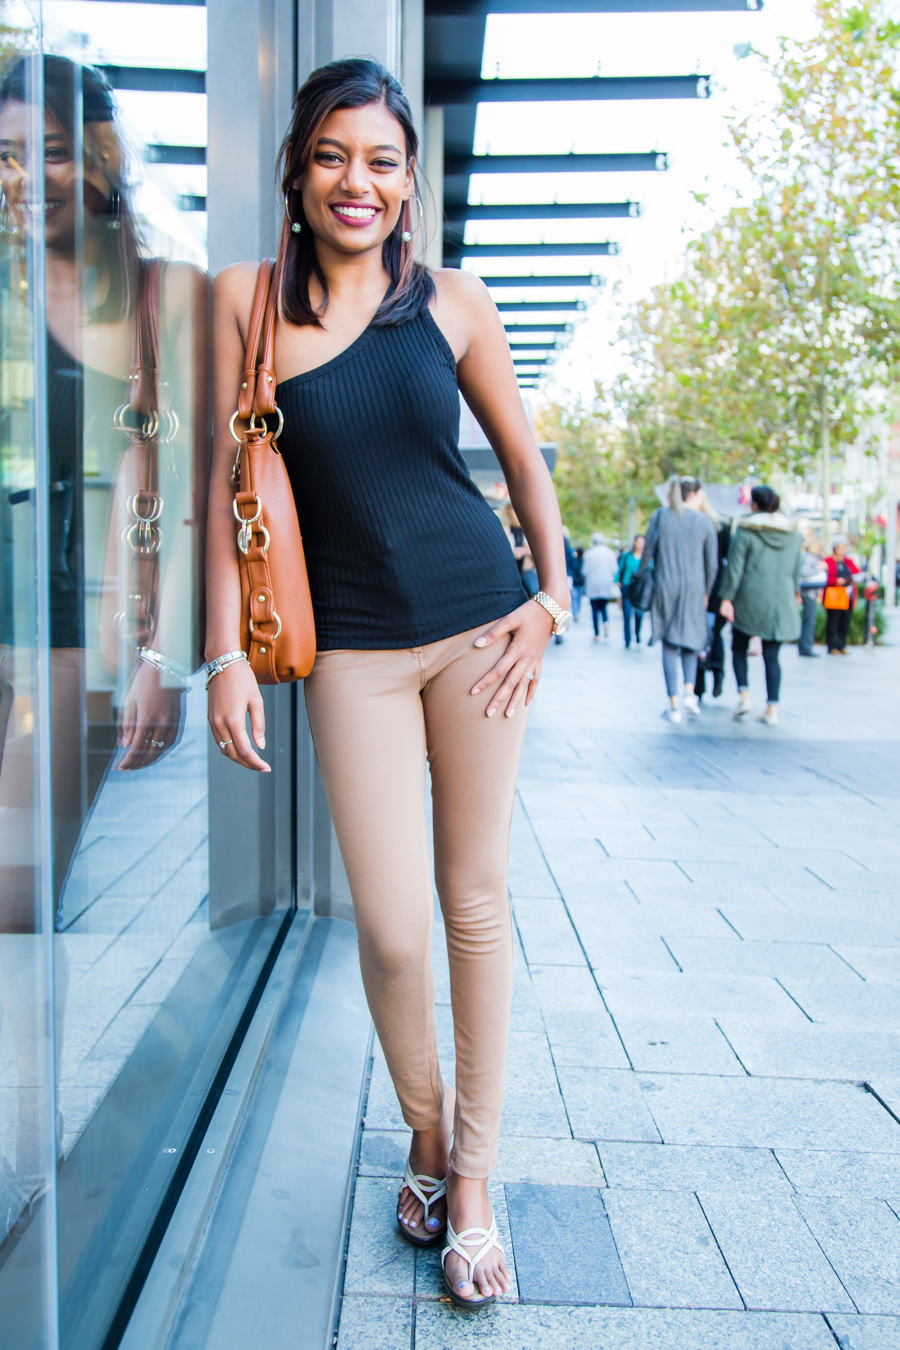 "WA: Micaela Murugan, Student, Perth CBD. ""Thank you, I'm flattered that  you want to take my photo."" Pic: <a href=""http://www.rahstudios.com.au/street-style.html/"" target=""_blank"">Alain Quah</a>"